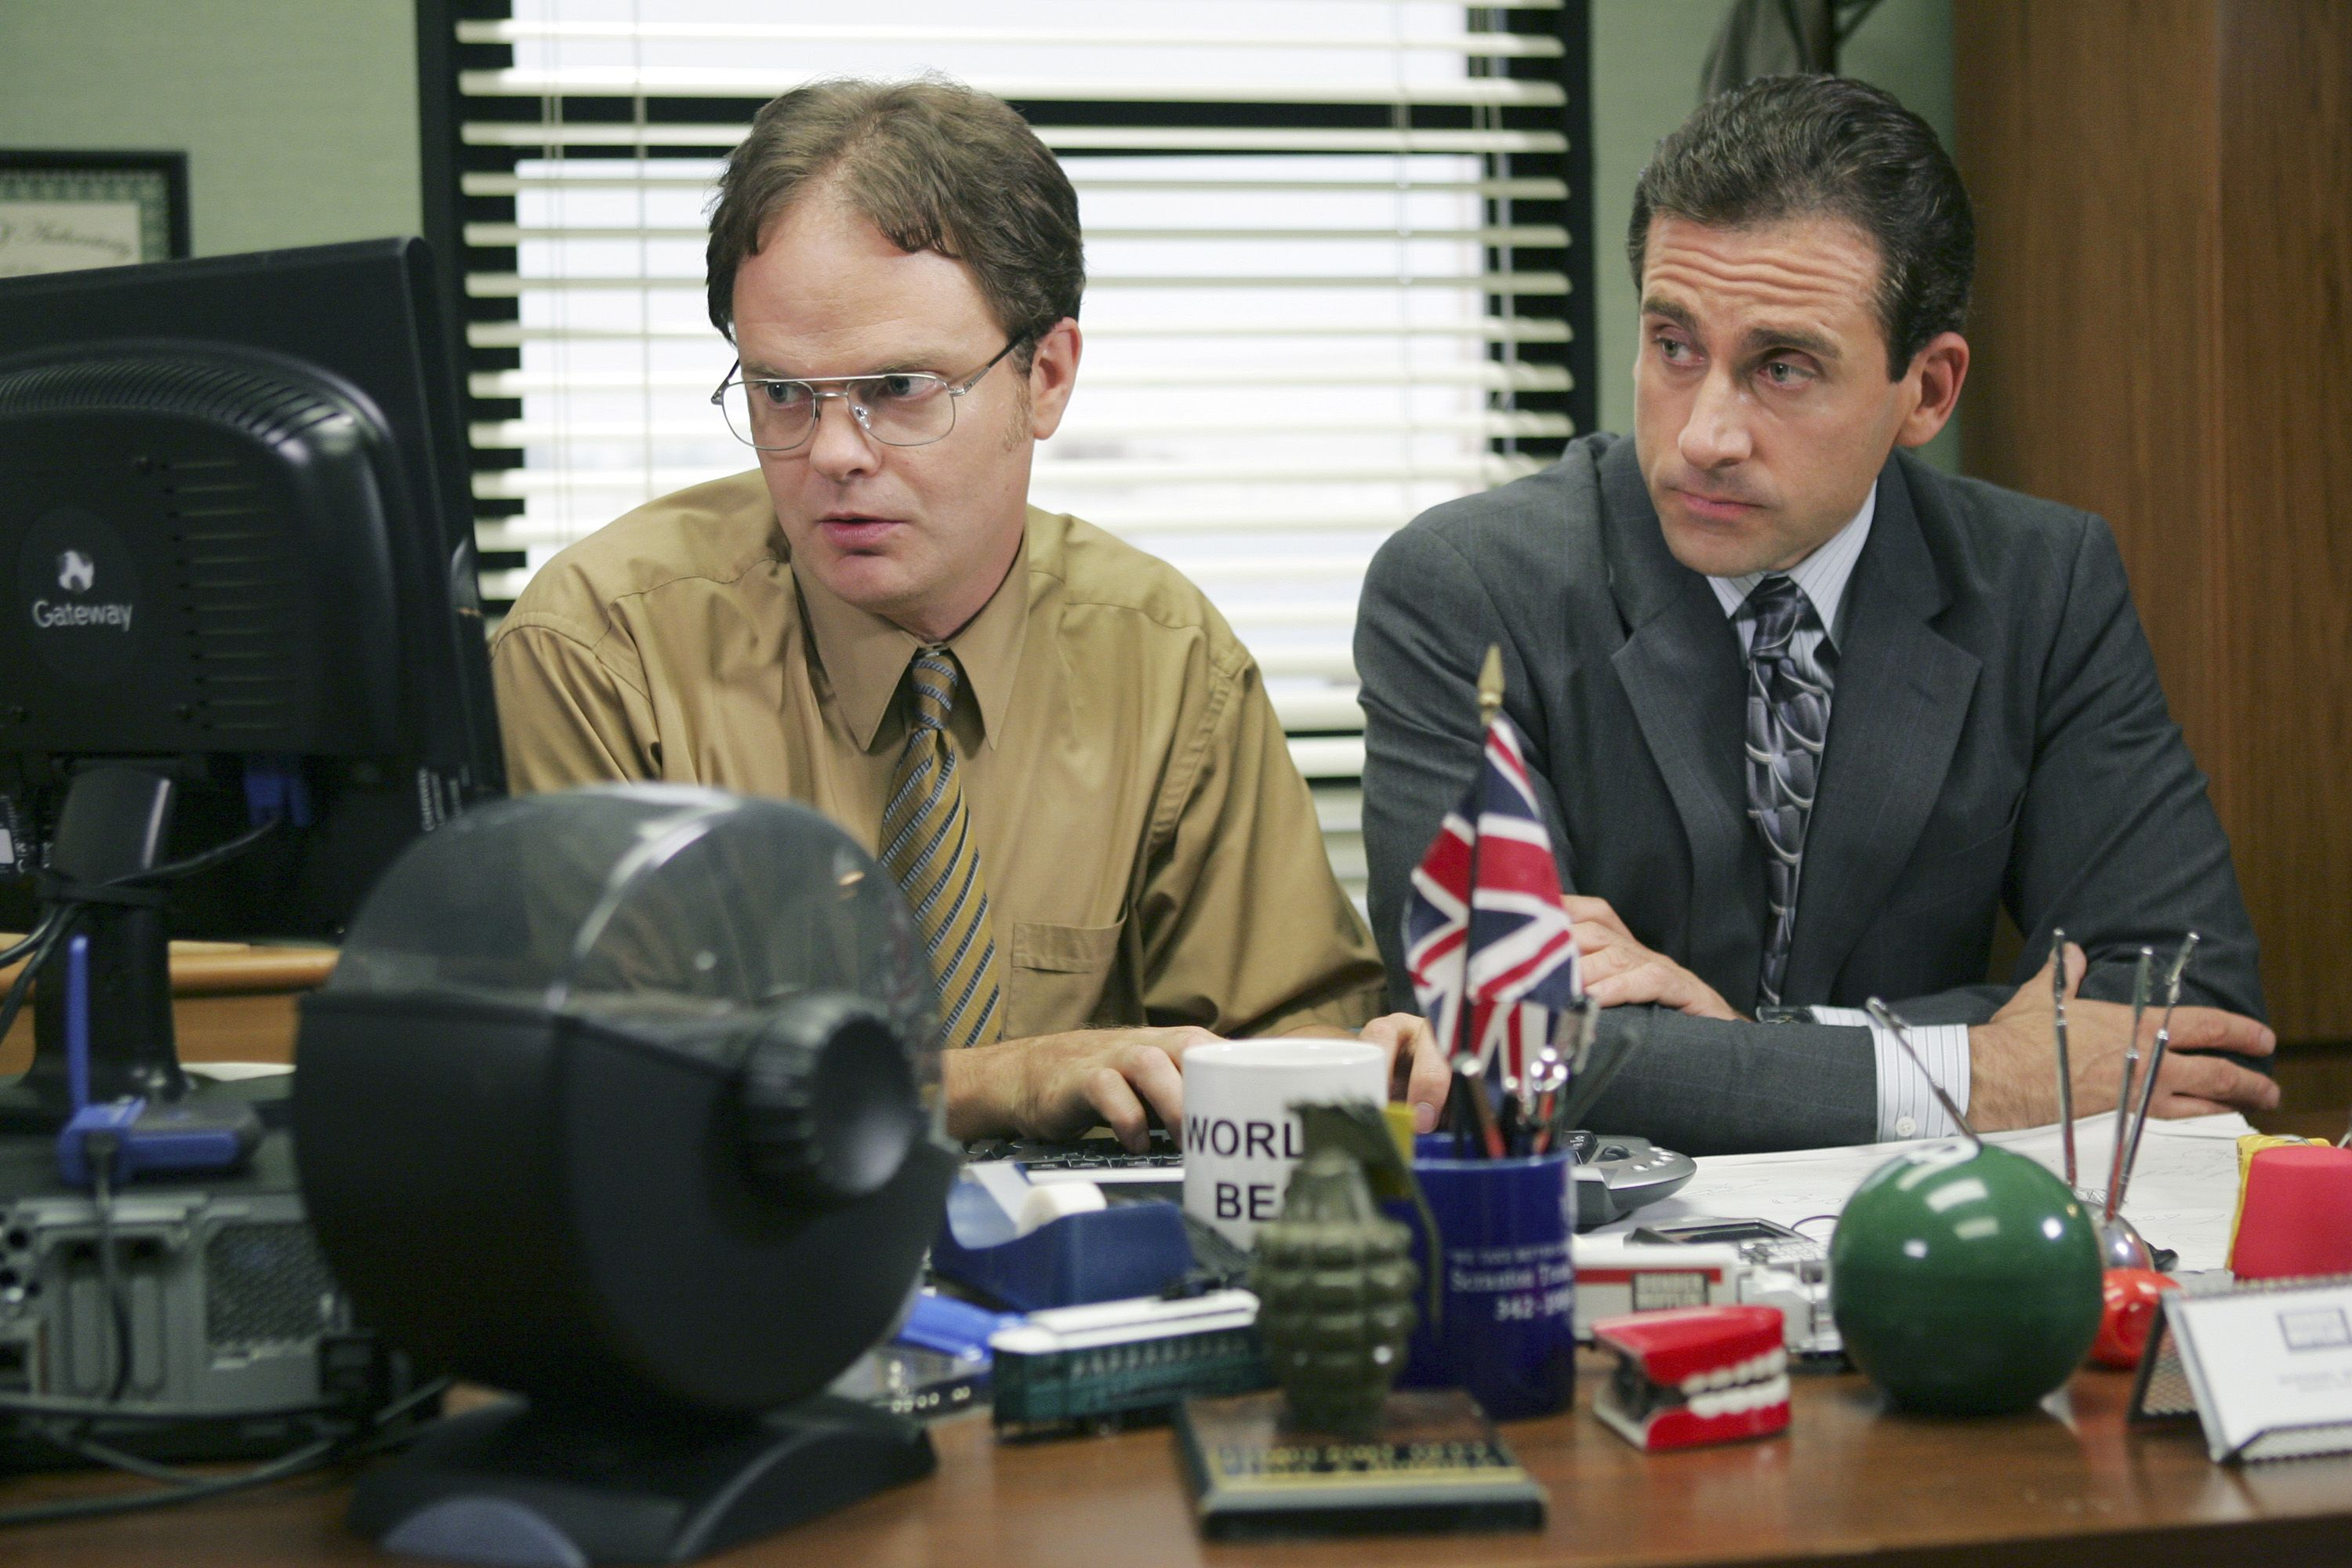 Is 'The Office' Really Leaving Netflix? - When Netflix Is